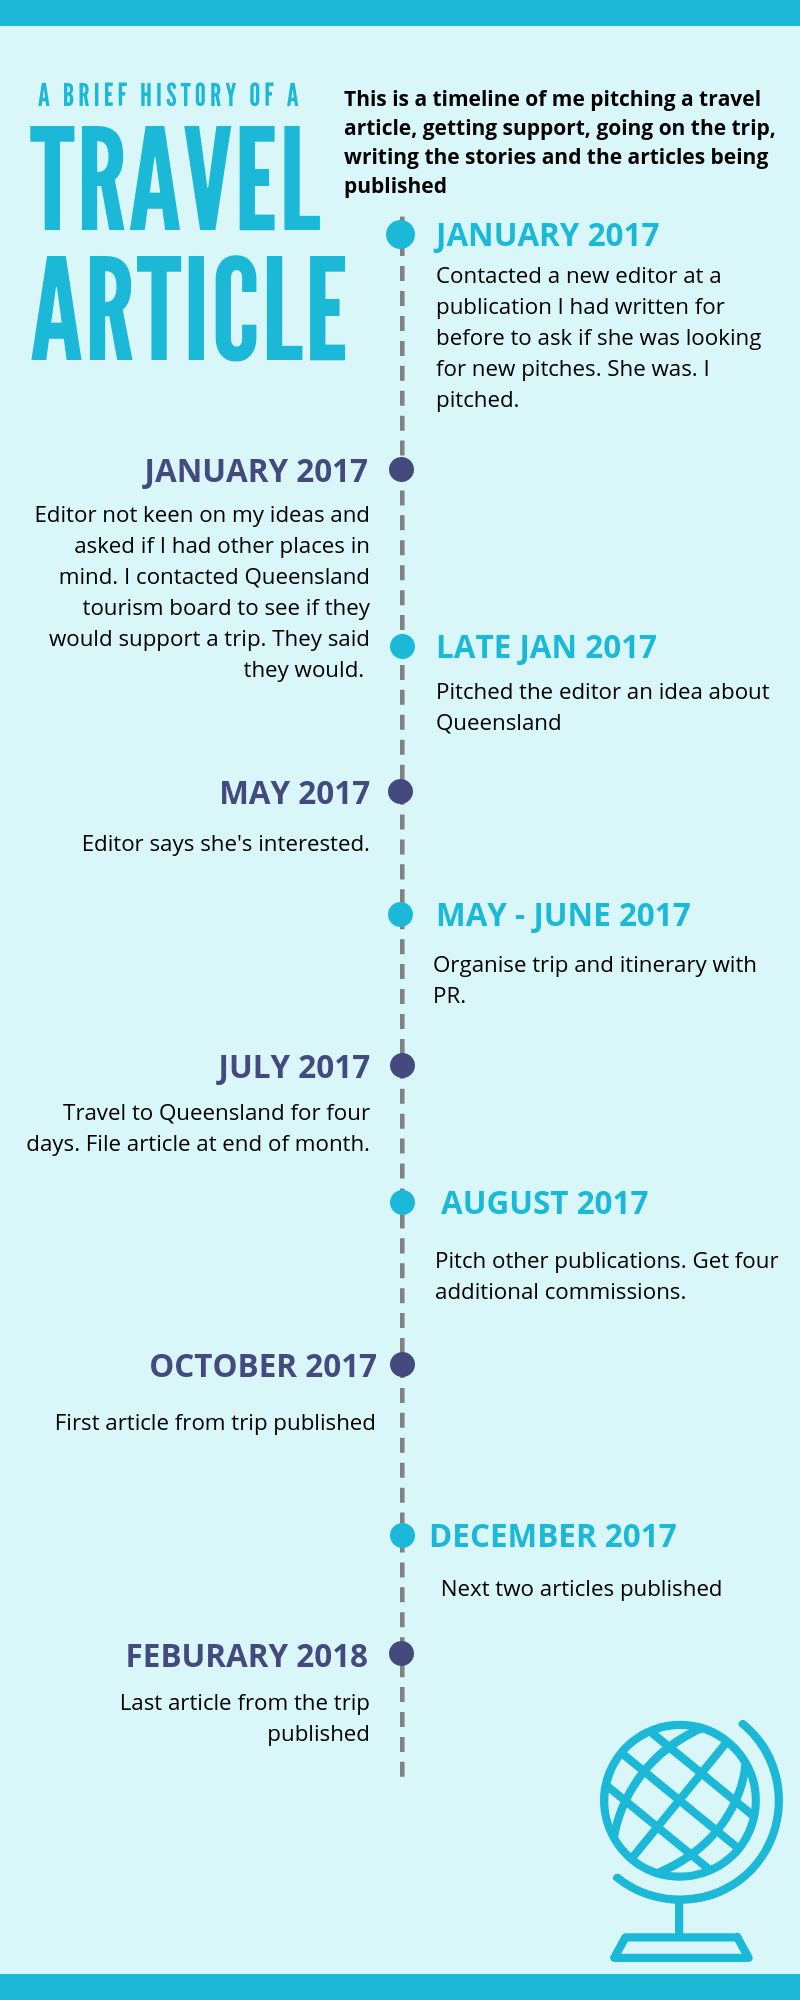 A timeline of a travel article - from pitch to publication